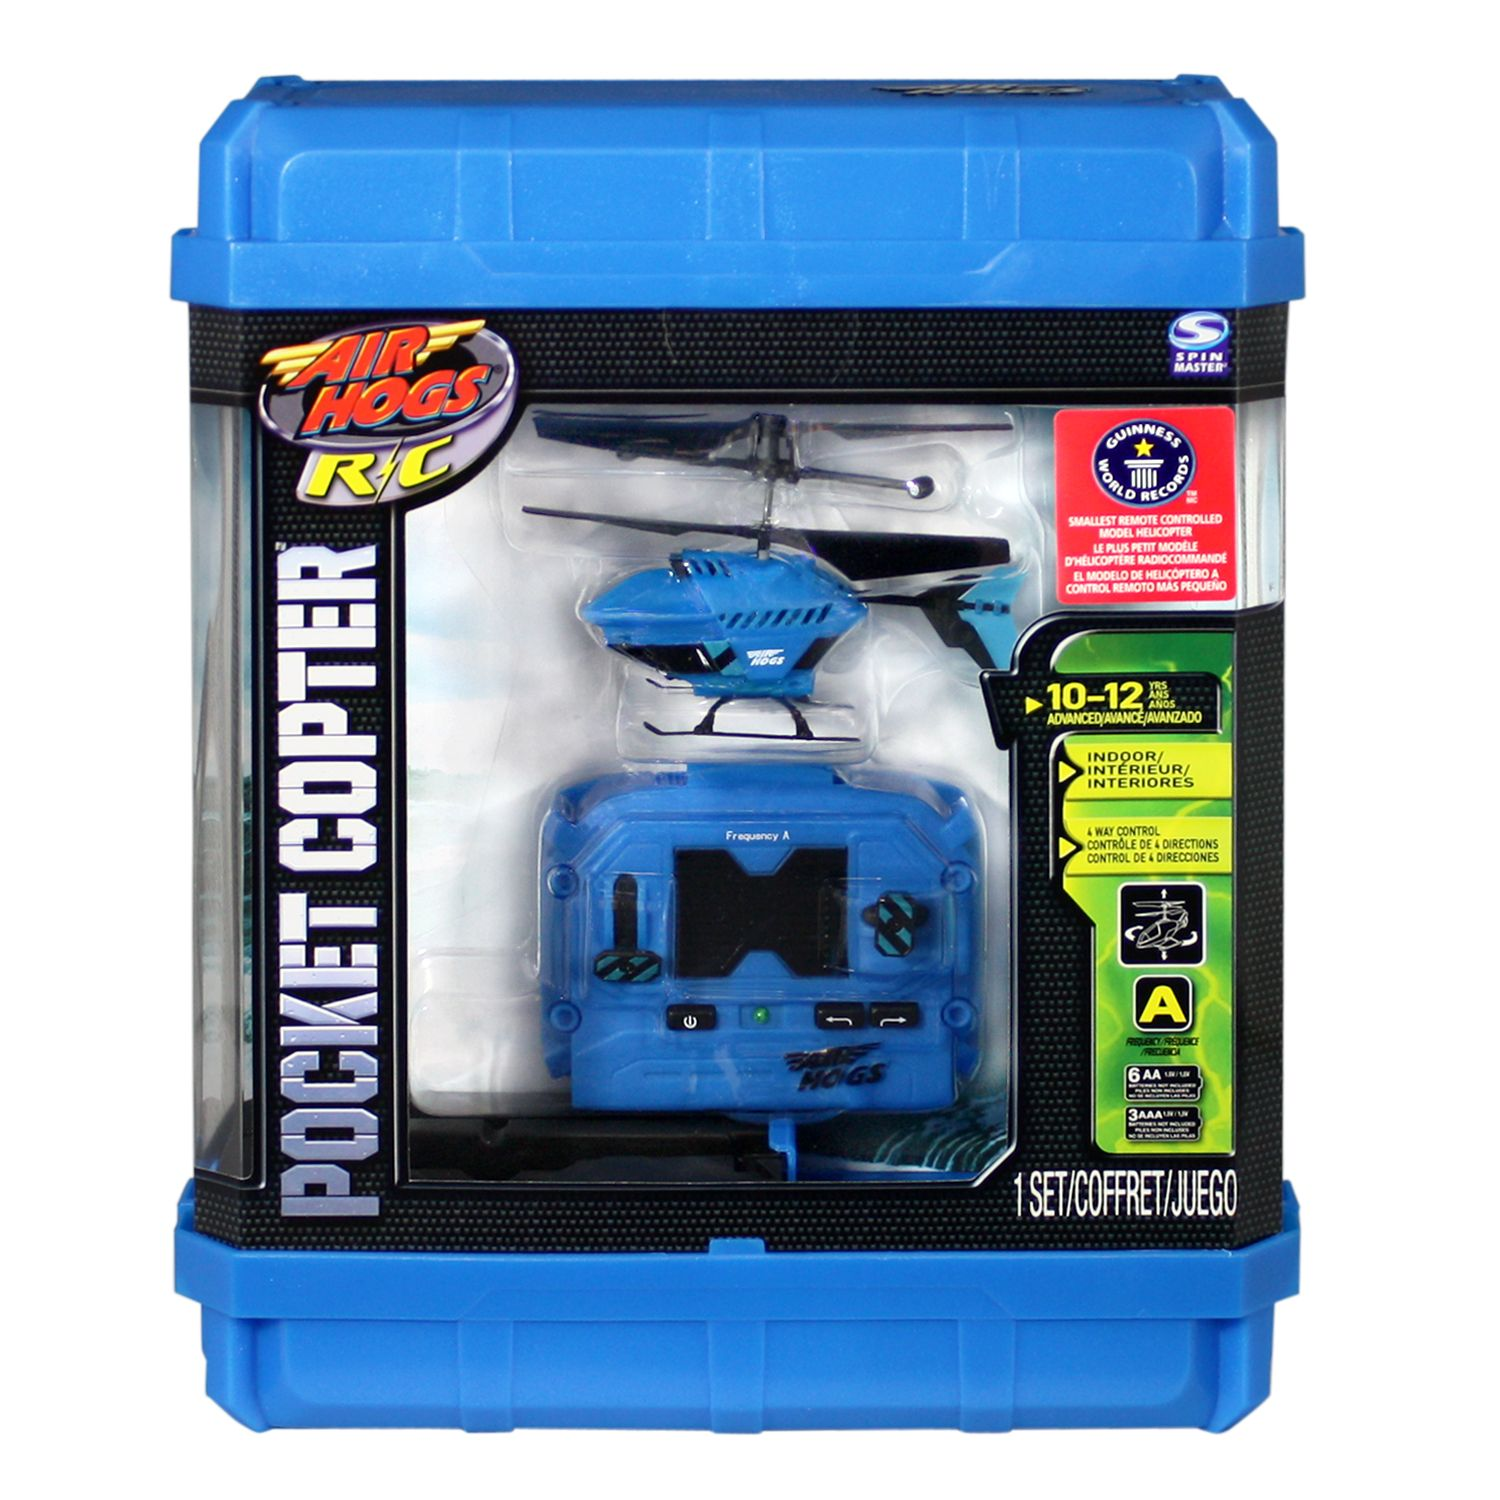 air hogs helicopter parts with Download Free Software Air Hogs Pocket Copter Instruction Manual on 221359280967 further 291943958663 further Hercules Unbreakable Rc Helicopter together with F 1176349 Auc5010432715897 besides 4700000.